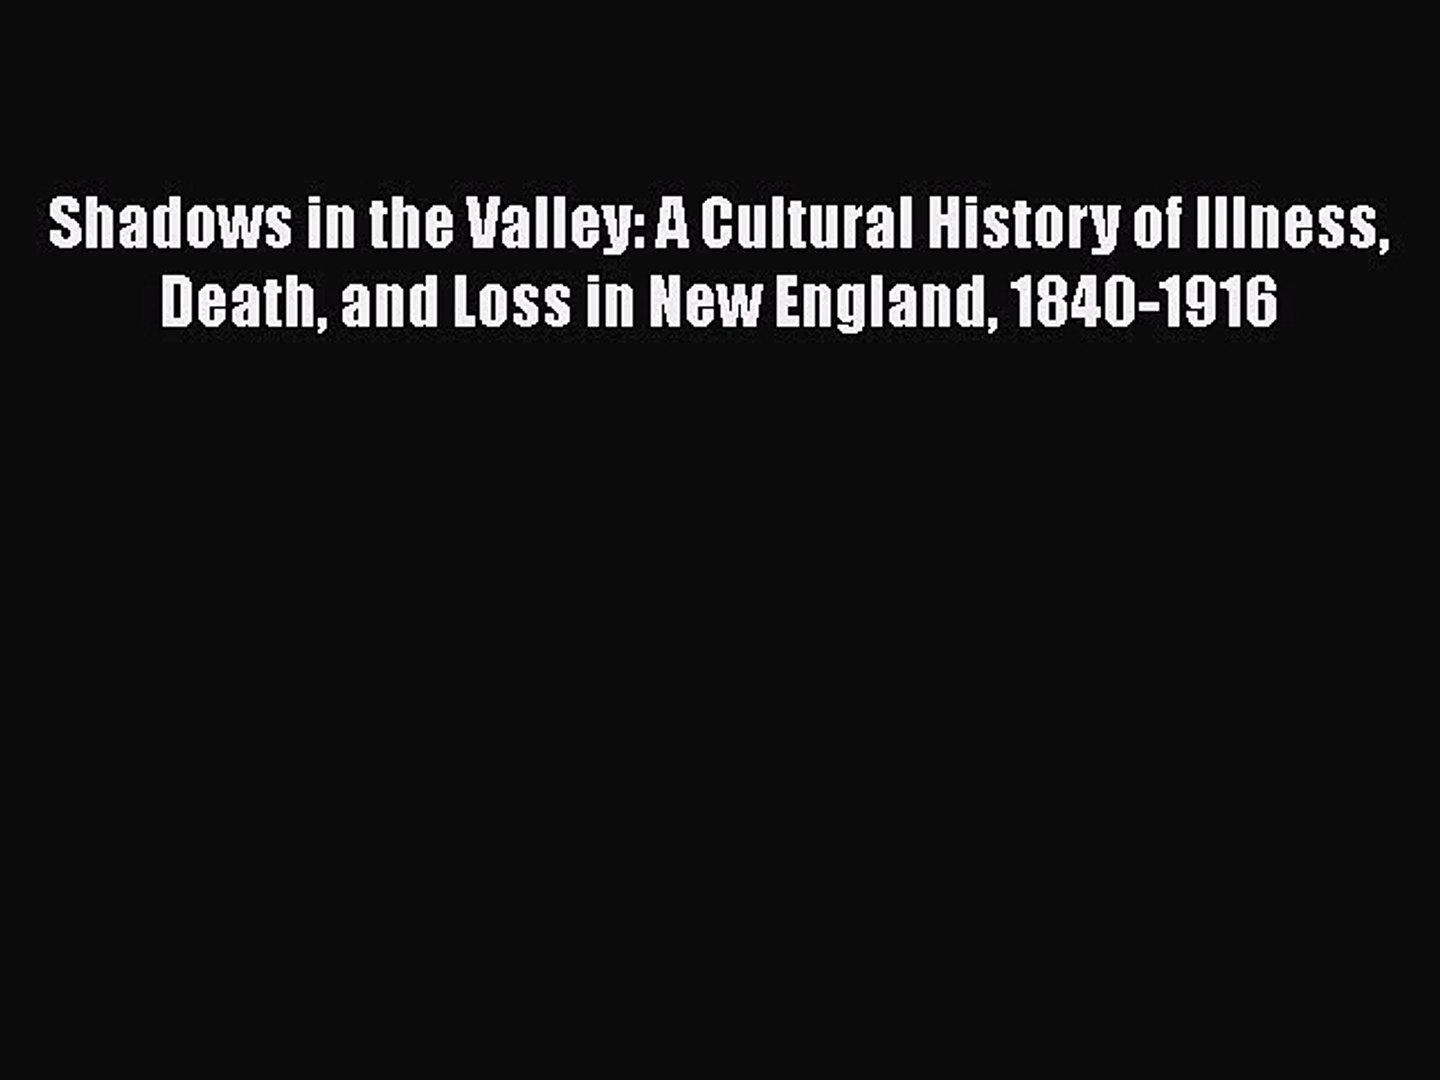 Read Shadows in the Valley: A Cultural History of Illness Death and Loss in New England 1840-1916